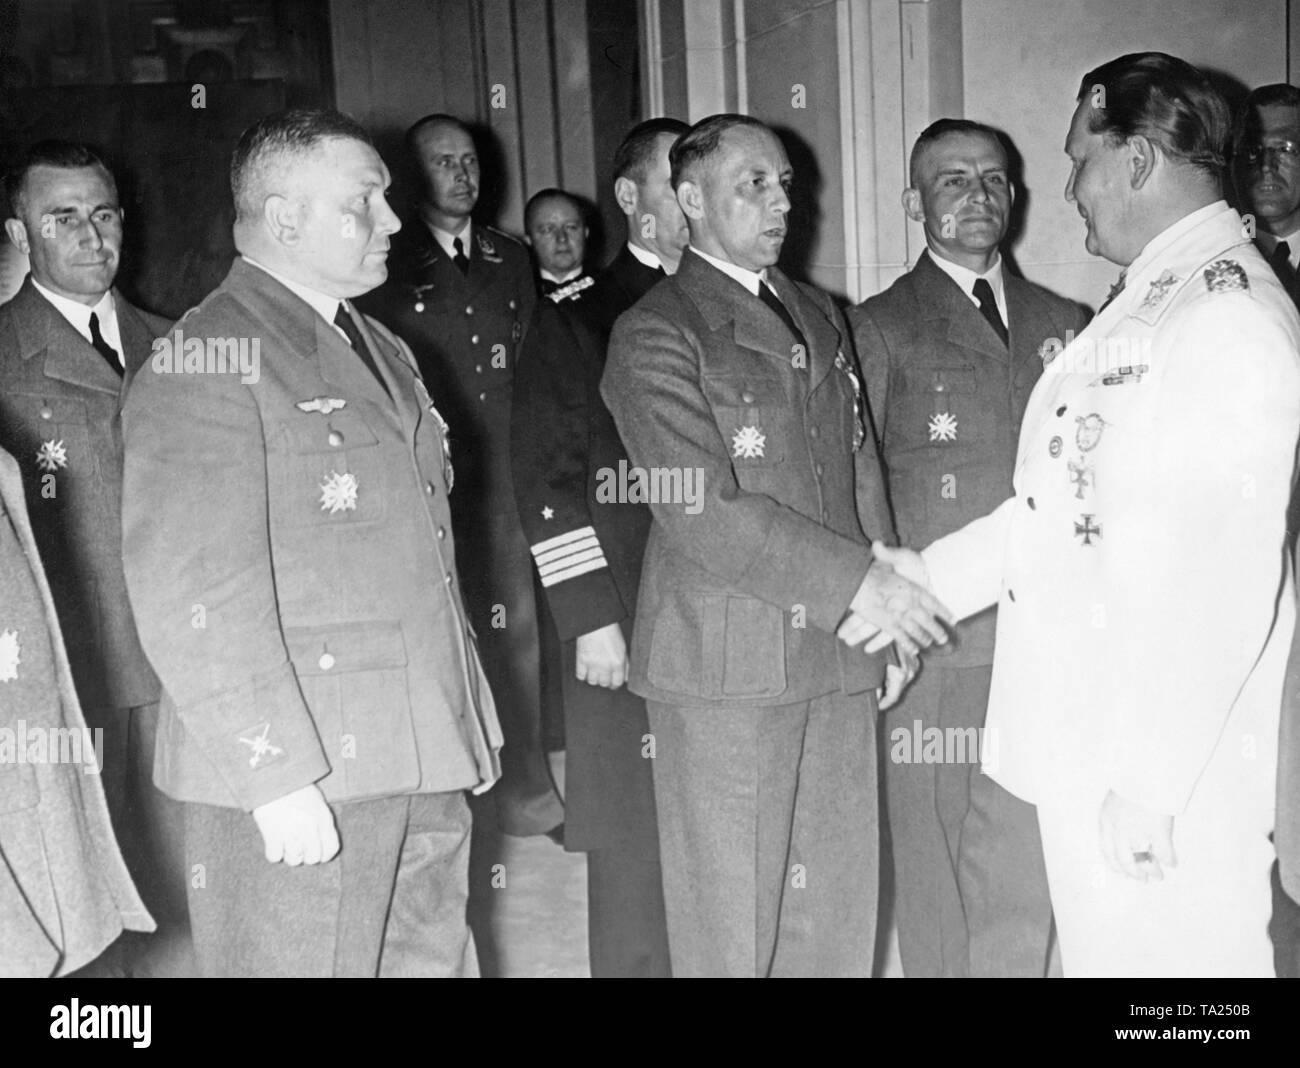 Photo of Field Marshal General, Hermann Goering (right), at the reception of officers of the Condor Legion who returned from the Spanish Civil War in the Haus der Flieger ('House of the Aviators') in Prinz Albrecht Strasse in Mitte (Berlin) on June 5, 1939. At the front on the left stands Hellmuth Volkmann, who was promoted to major general. All the officers are wearing the Spanish Cross. - Stock Image